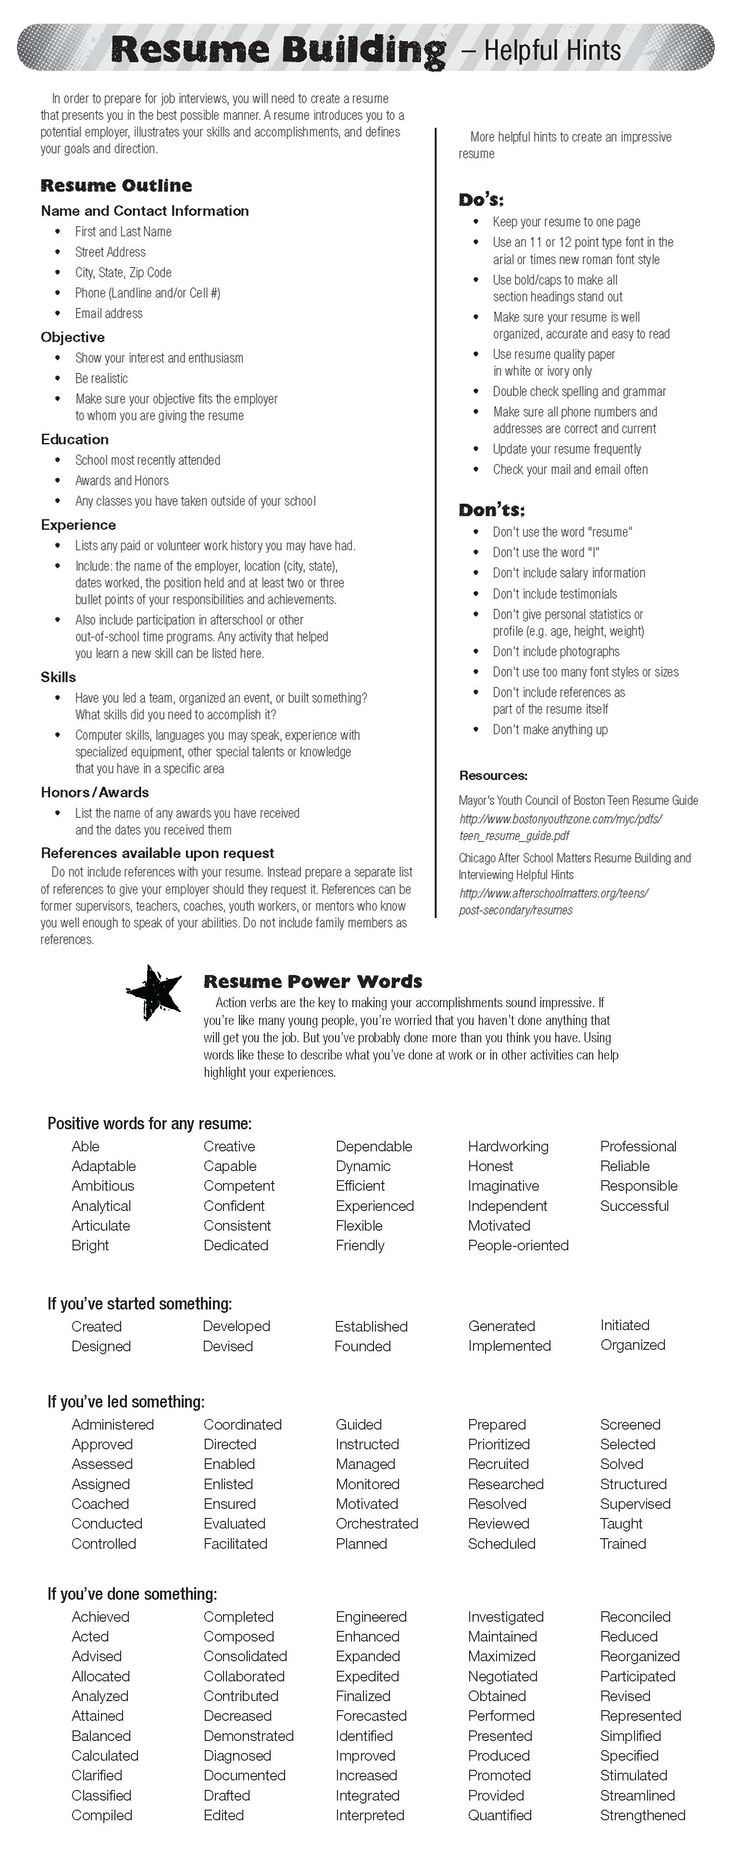 Opposenewapstandardsus  Marvellous  Ideas About Resume On Pinterest  Cv Format Resume Cv And  With Exciting  Ideas About Resume On Pinterest  Cv Format Resume Cv And Resume Templates With Amusing Hostess Duties Resume Also Resume Objective Or Summary In Addition Purdue Cco Resume And Great Skills For A Resume As Well As Artist Resume Sample Additionally Director Of Human Resources Resume From Pinterestcom With Opposenewapstandardsus  Exciting  Ideas About Resume On Pinterest  Cv Format Resume Cv And  With Amusing  Ideas About Resume On Pinterest  Cv Format Resume Cv And Resume Templates And Marvellous Hostess Duties Resume Also Resume Objective Or Summary In Addition Purdue Cco Resume From Pinterestcom